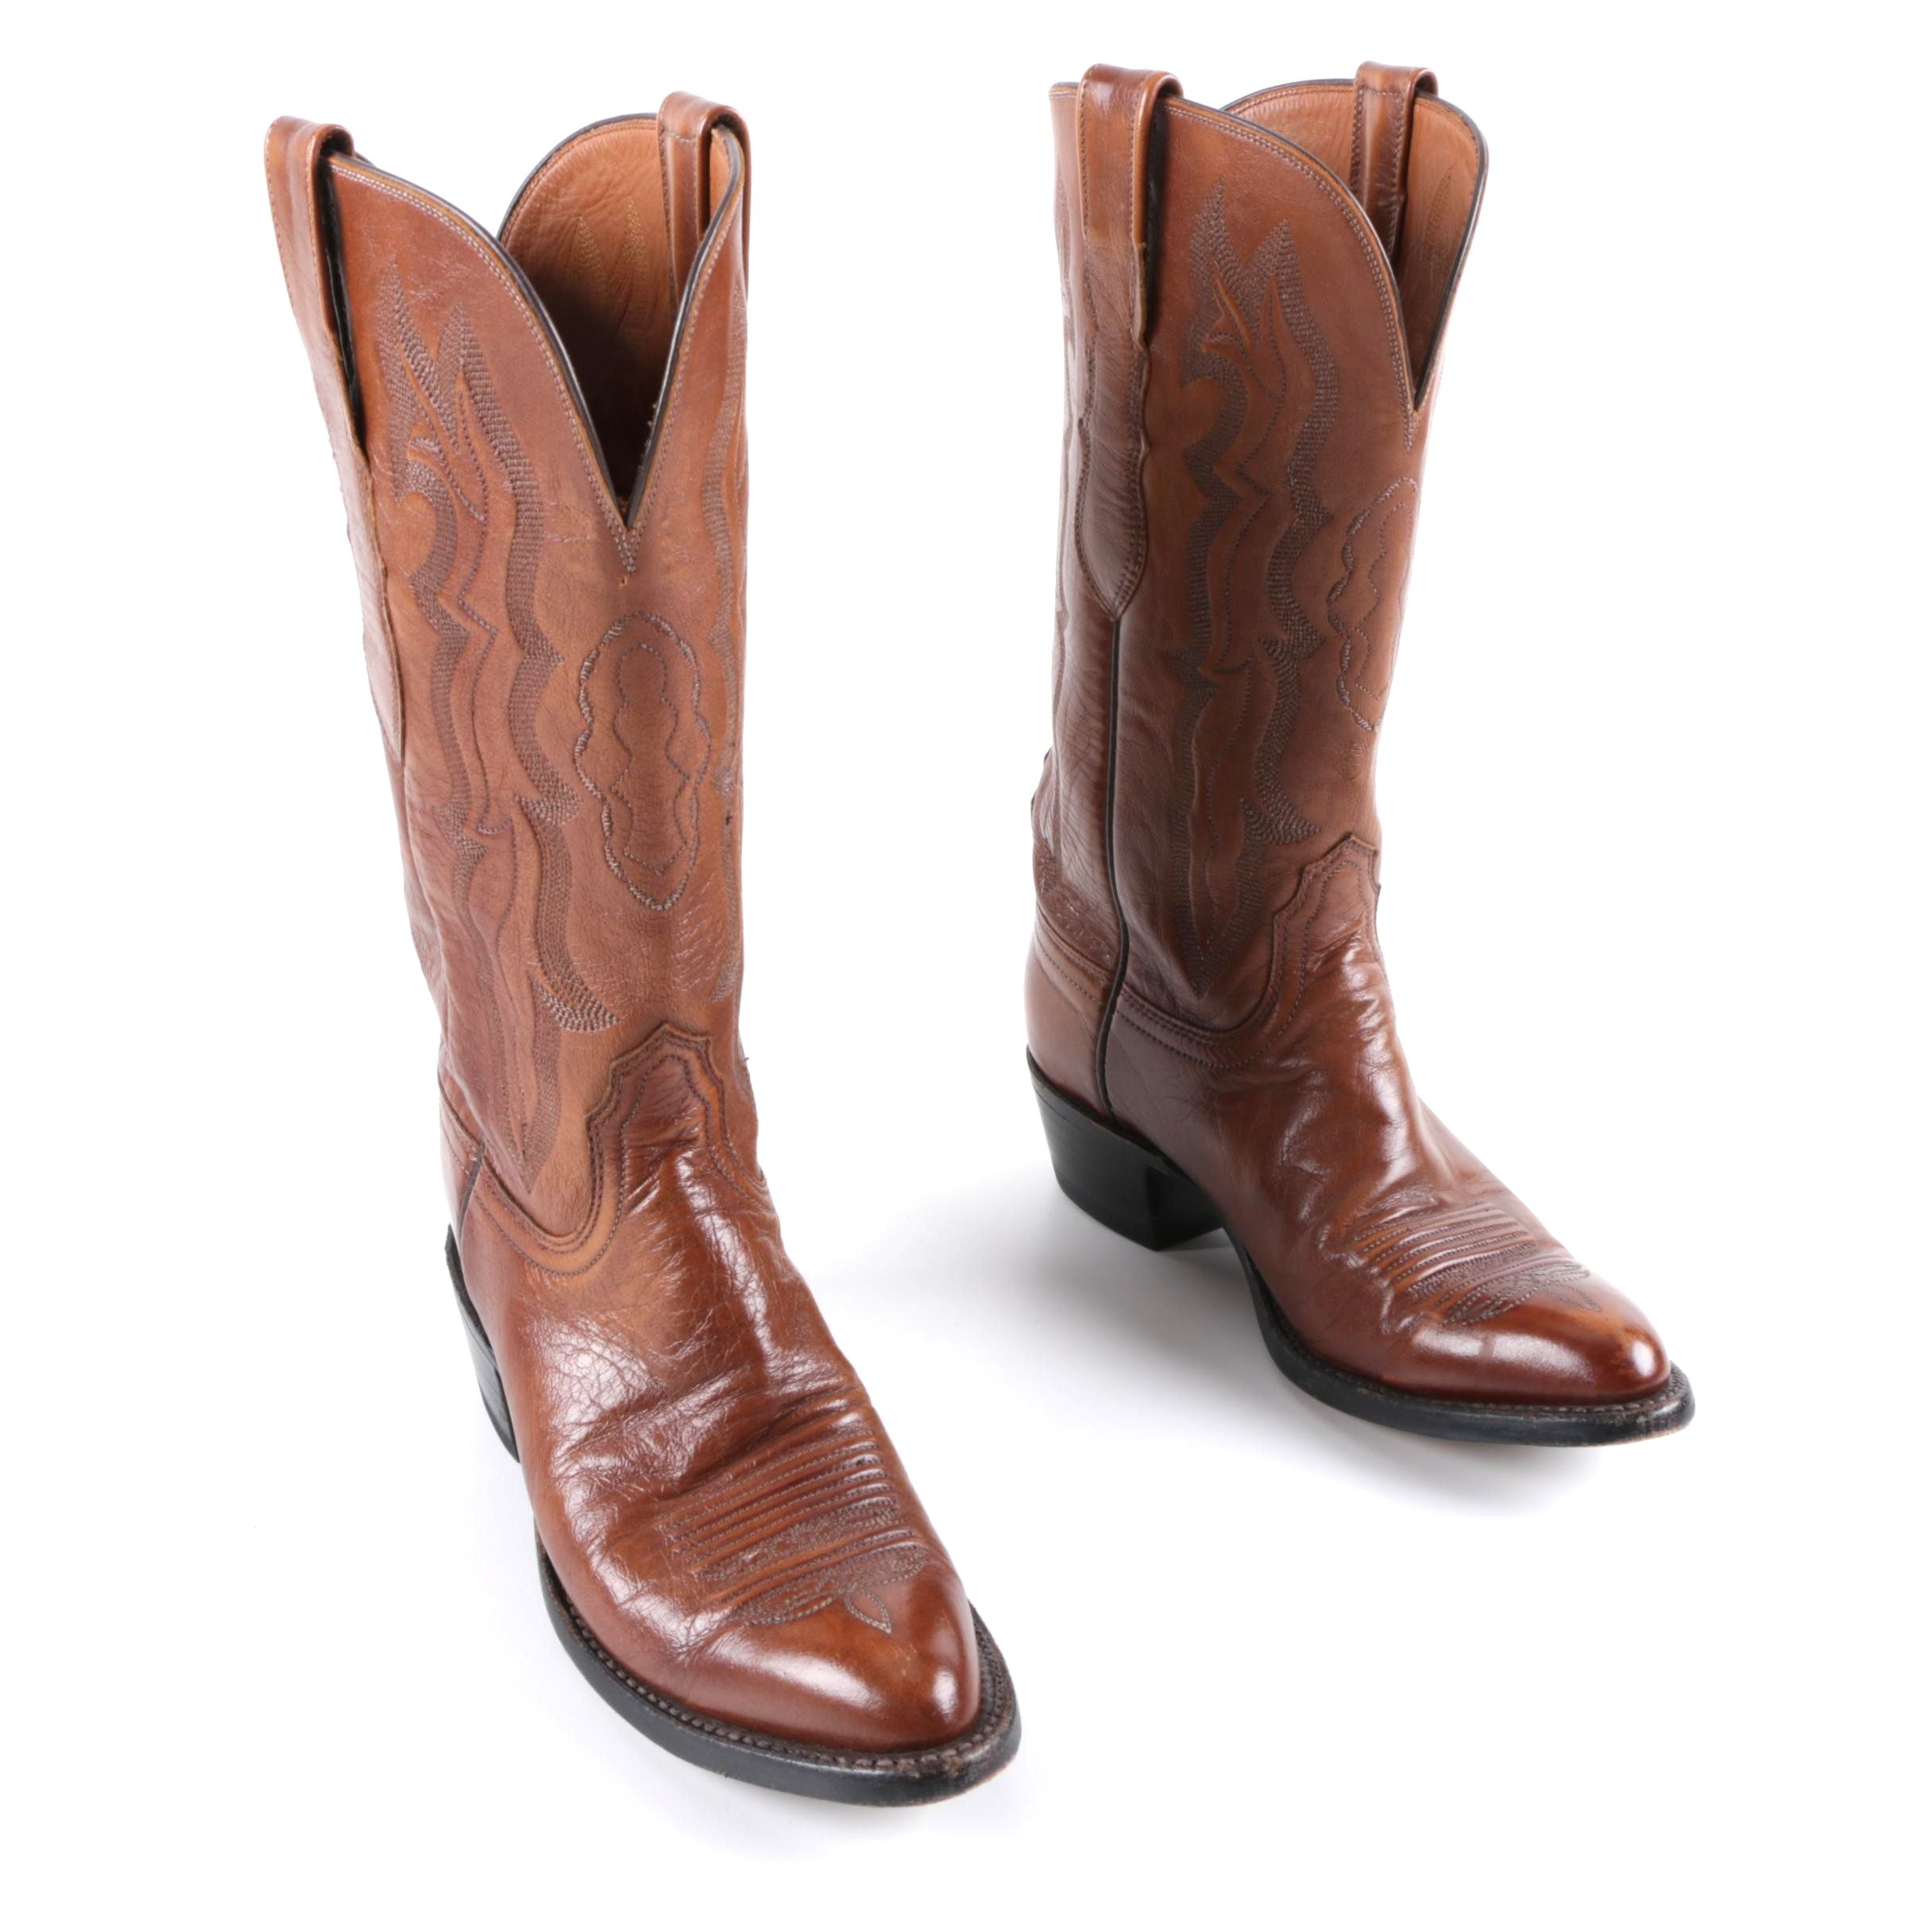 Women's Lucchese 2000 Brown Leather Cowgirl Boots